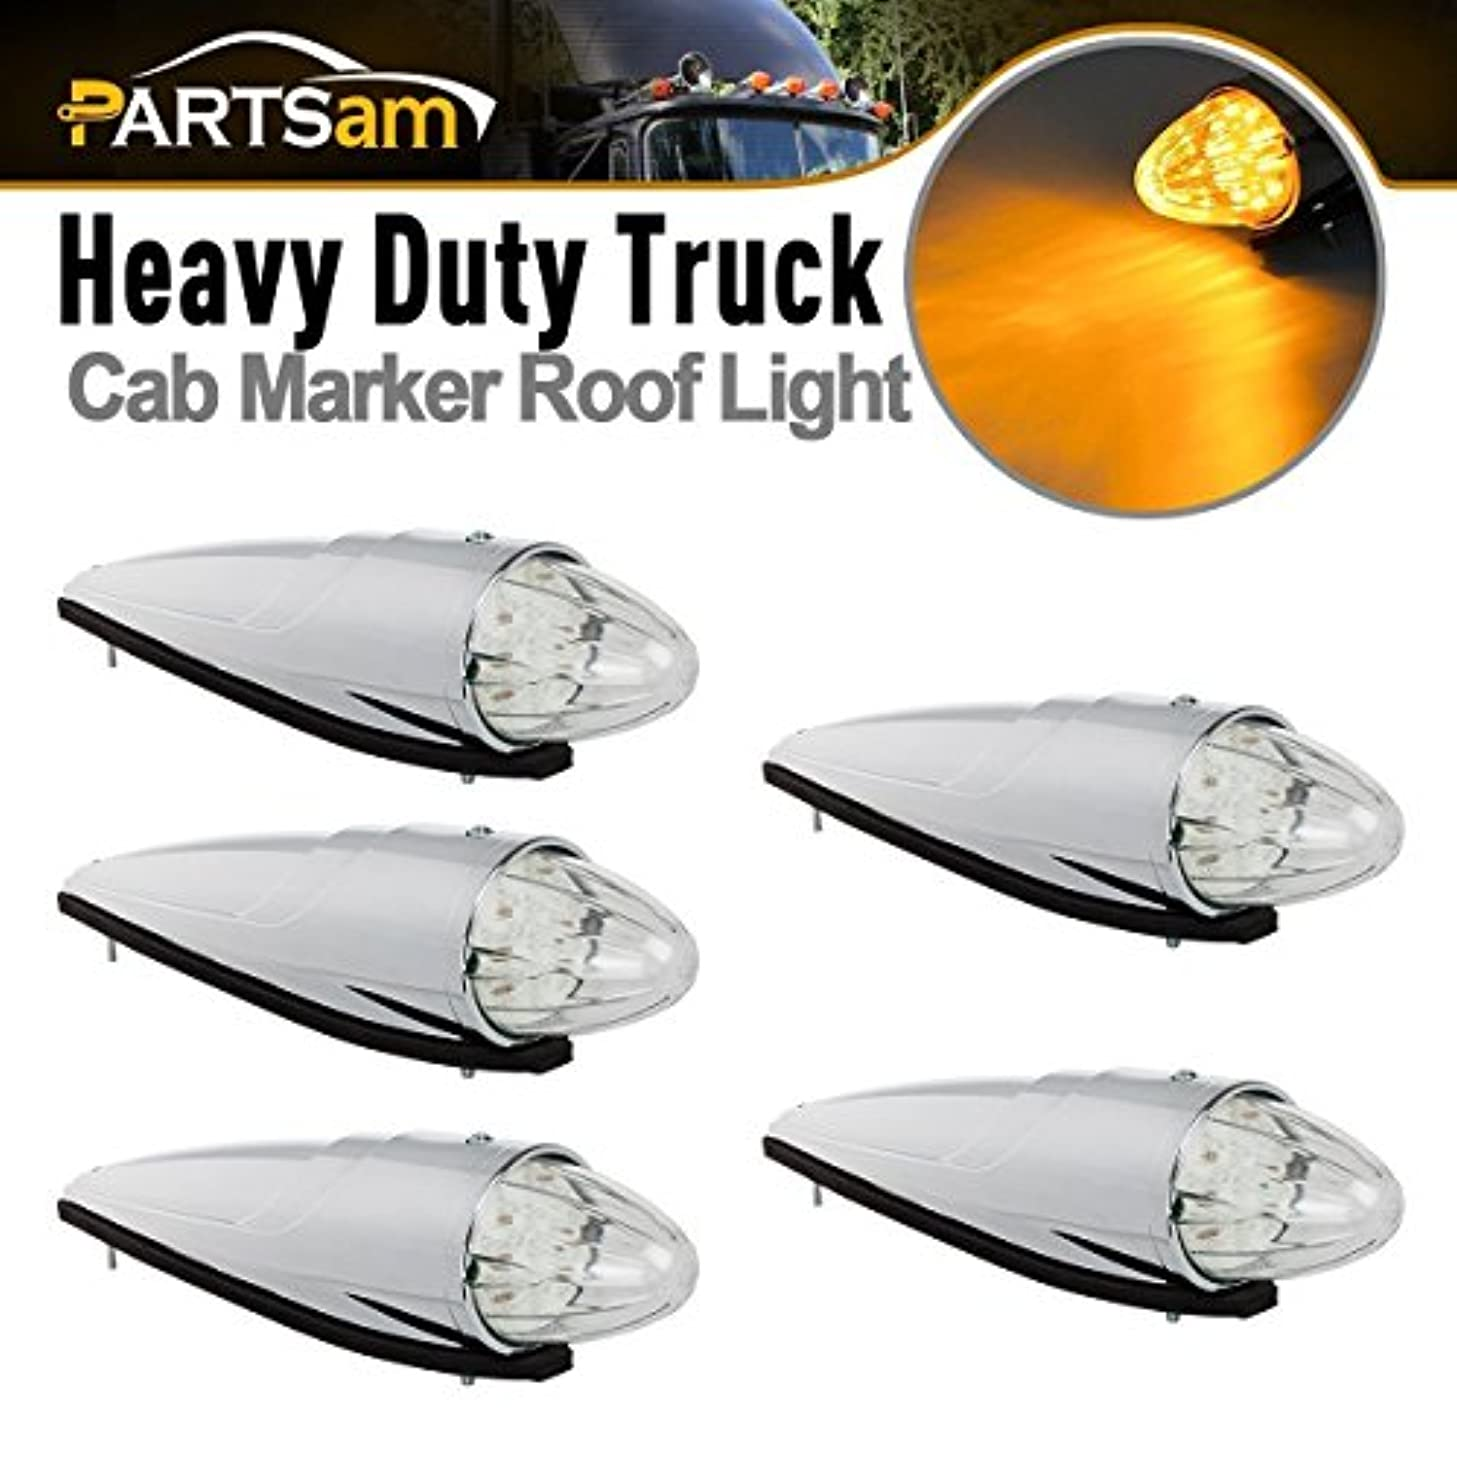 Partsam 5pc Super Bright Amber Yellow 17 LED Clear Lens Torpedo Chrome Cab Marker Top Roof Running Lights Assembly Compatible with Kenworth/Peterbilt/Freightliner/International/Mack Paccar Semi Truck